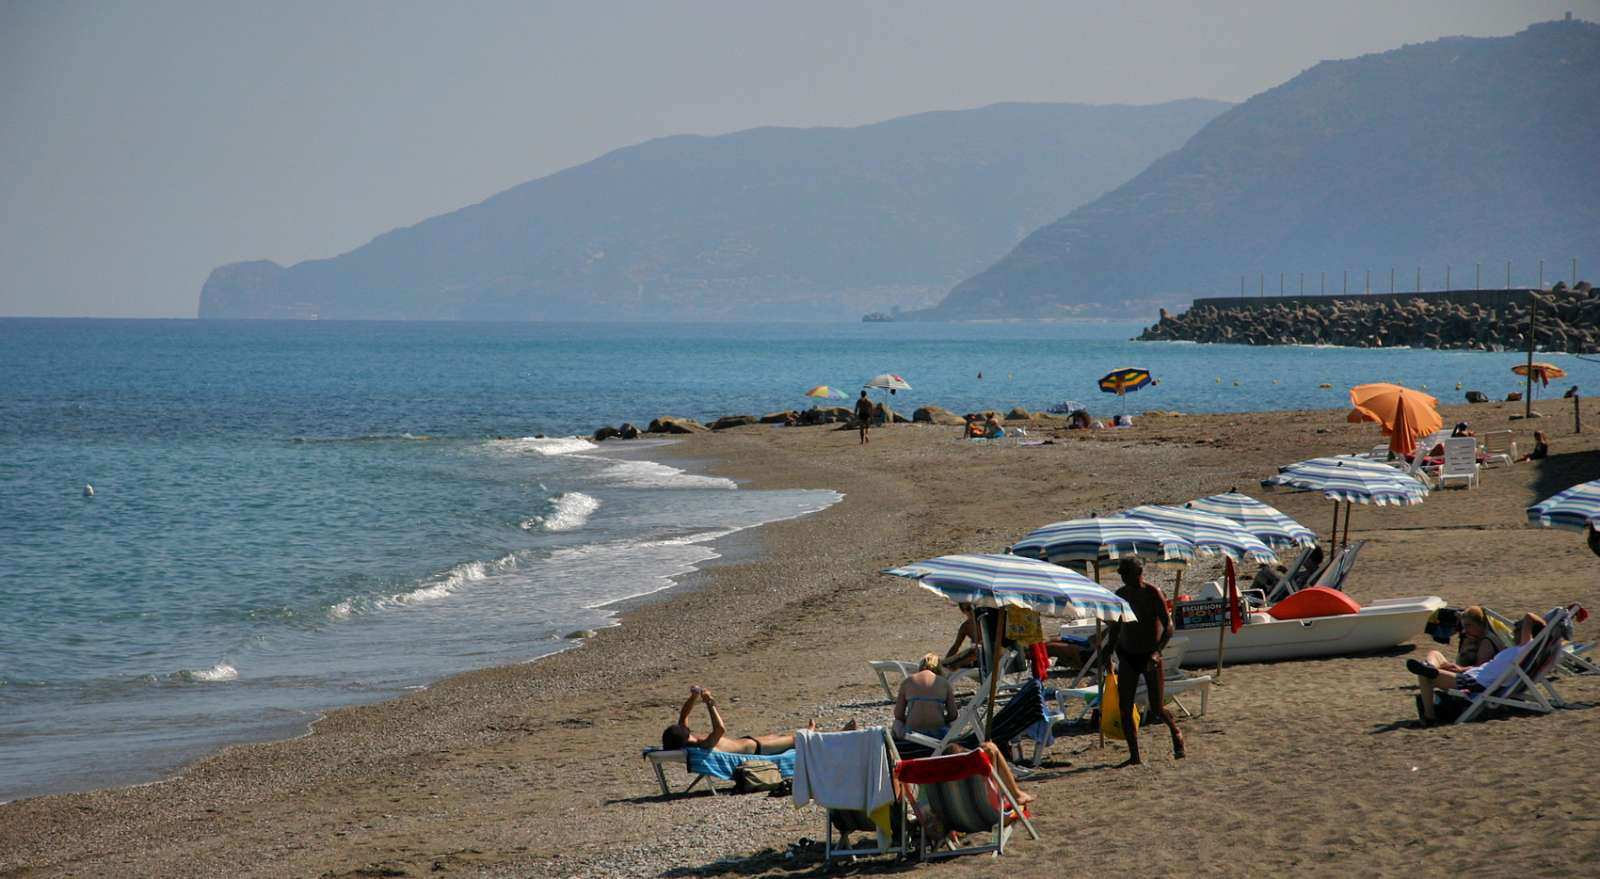 The beach at the port of Borgo San Gregorio